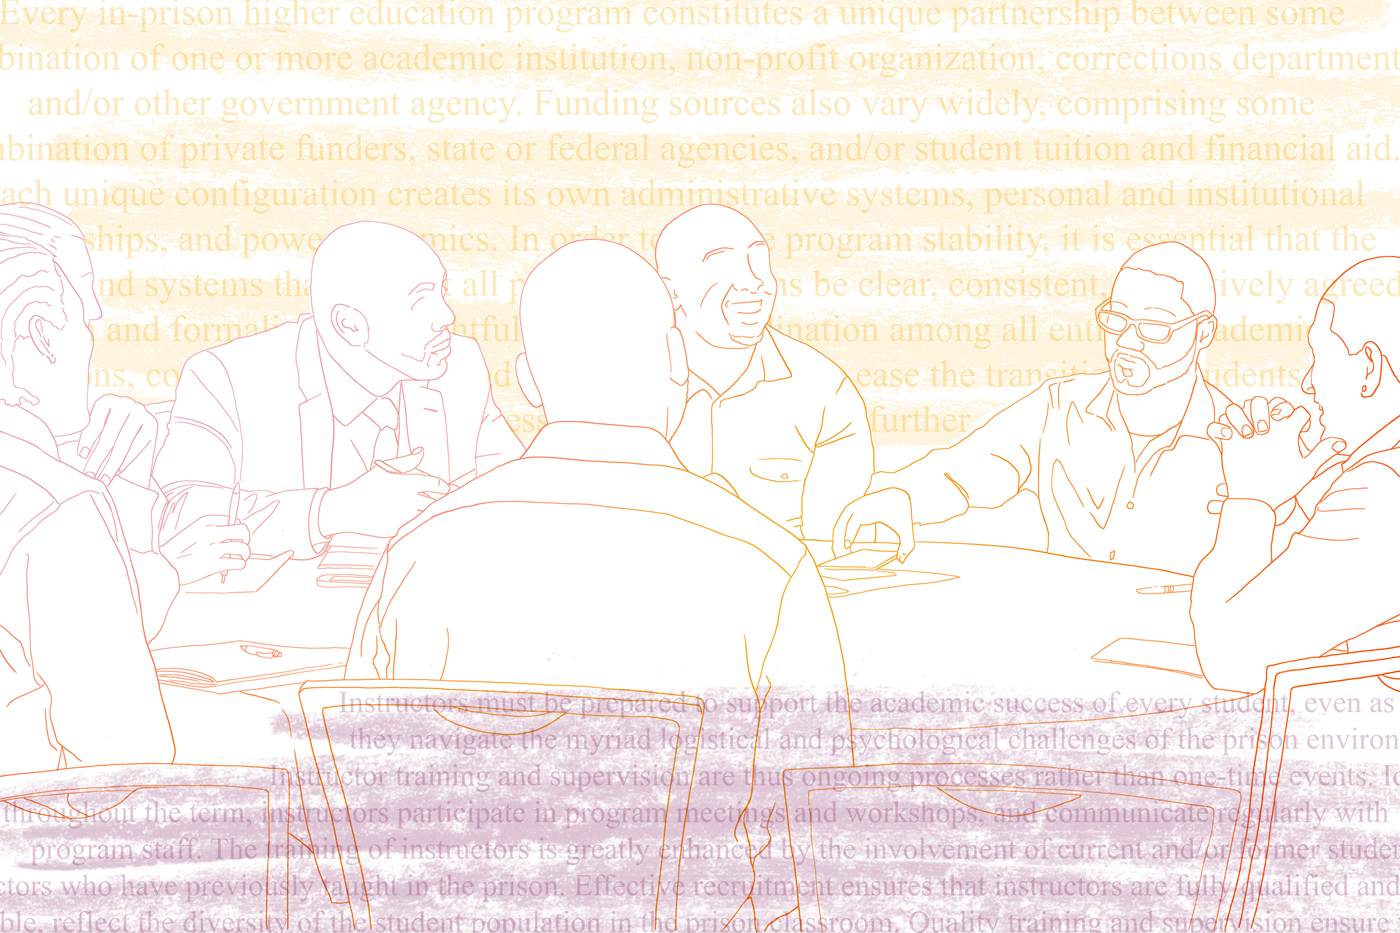 A colorful line drawing depicts a group of professionals talking around a table